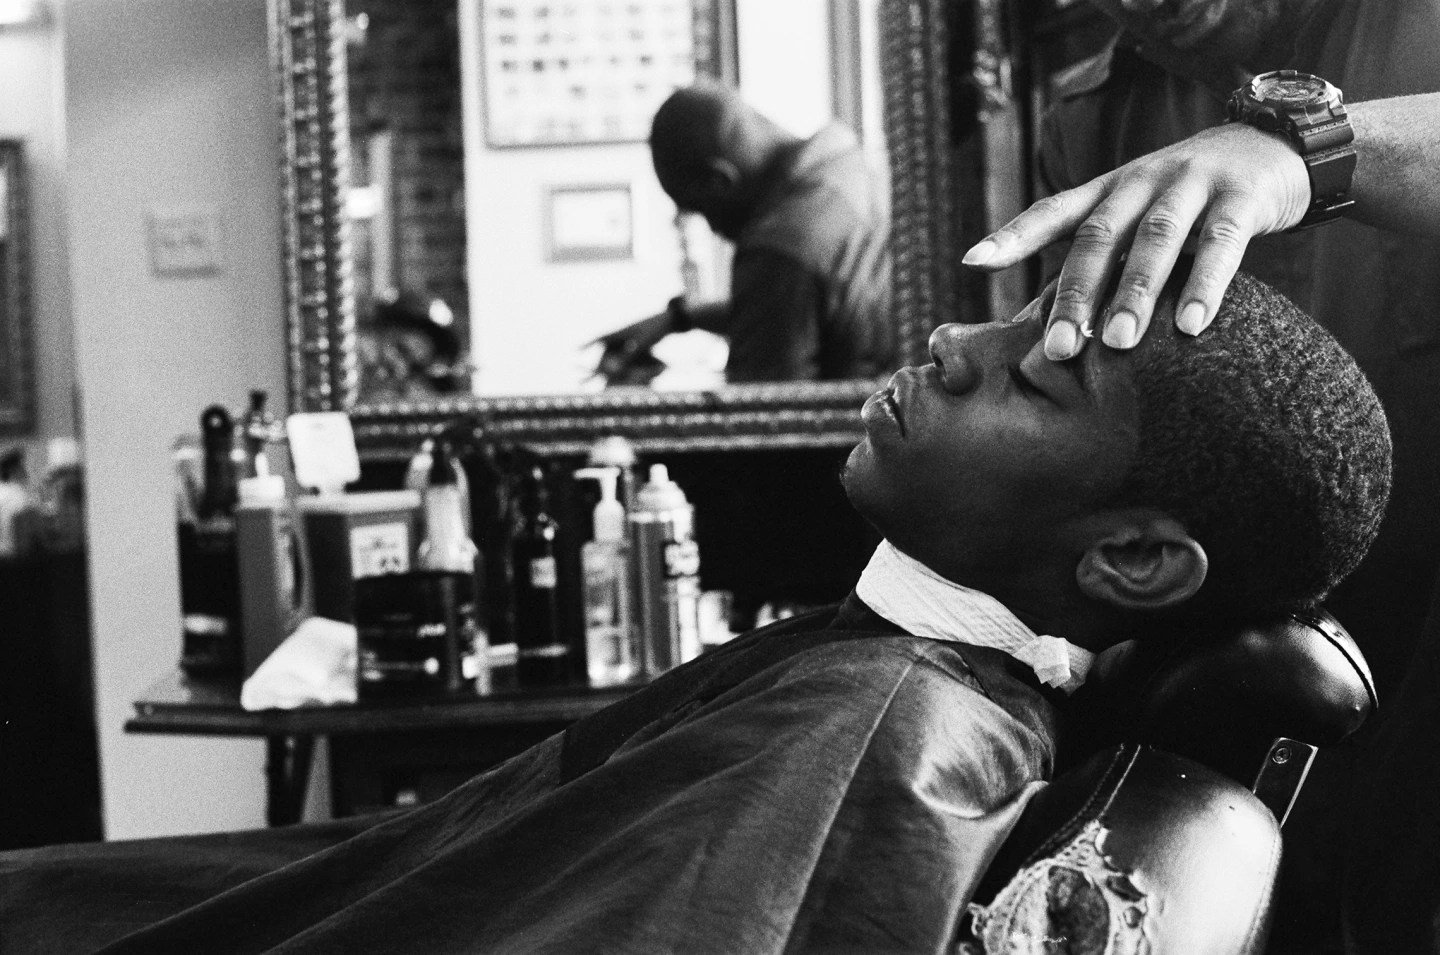 New York Fall Hd Wallpaper The Power And Politics Of The Black Barbershop The Fader